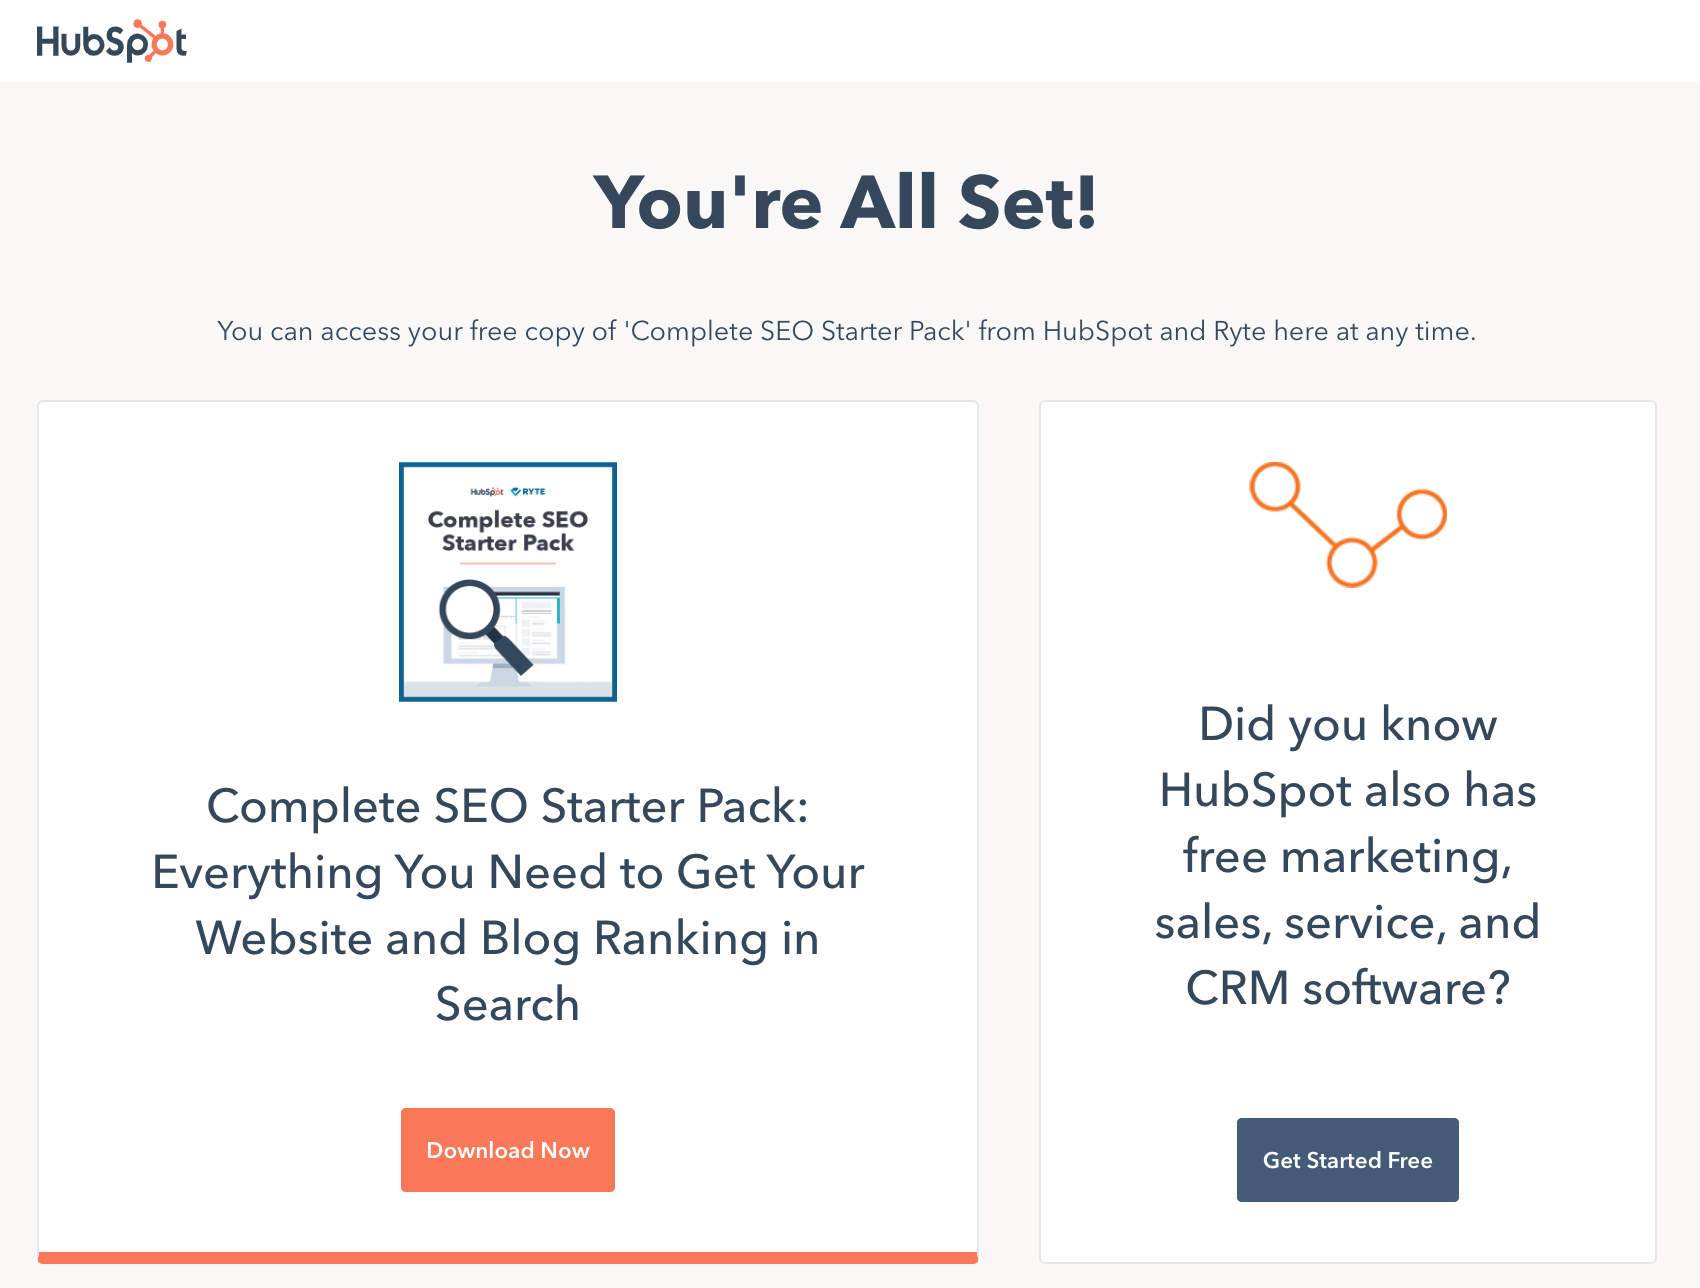 HubSpot SEO Starter Pack thank-you page